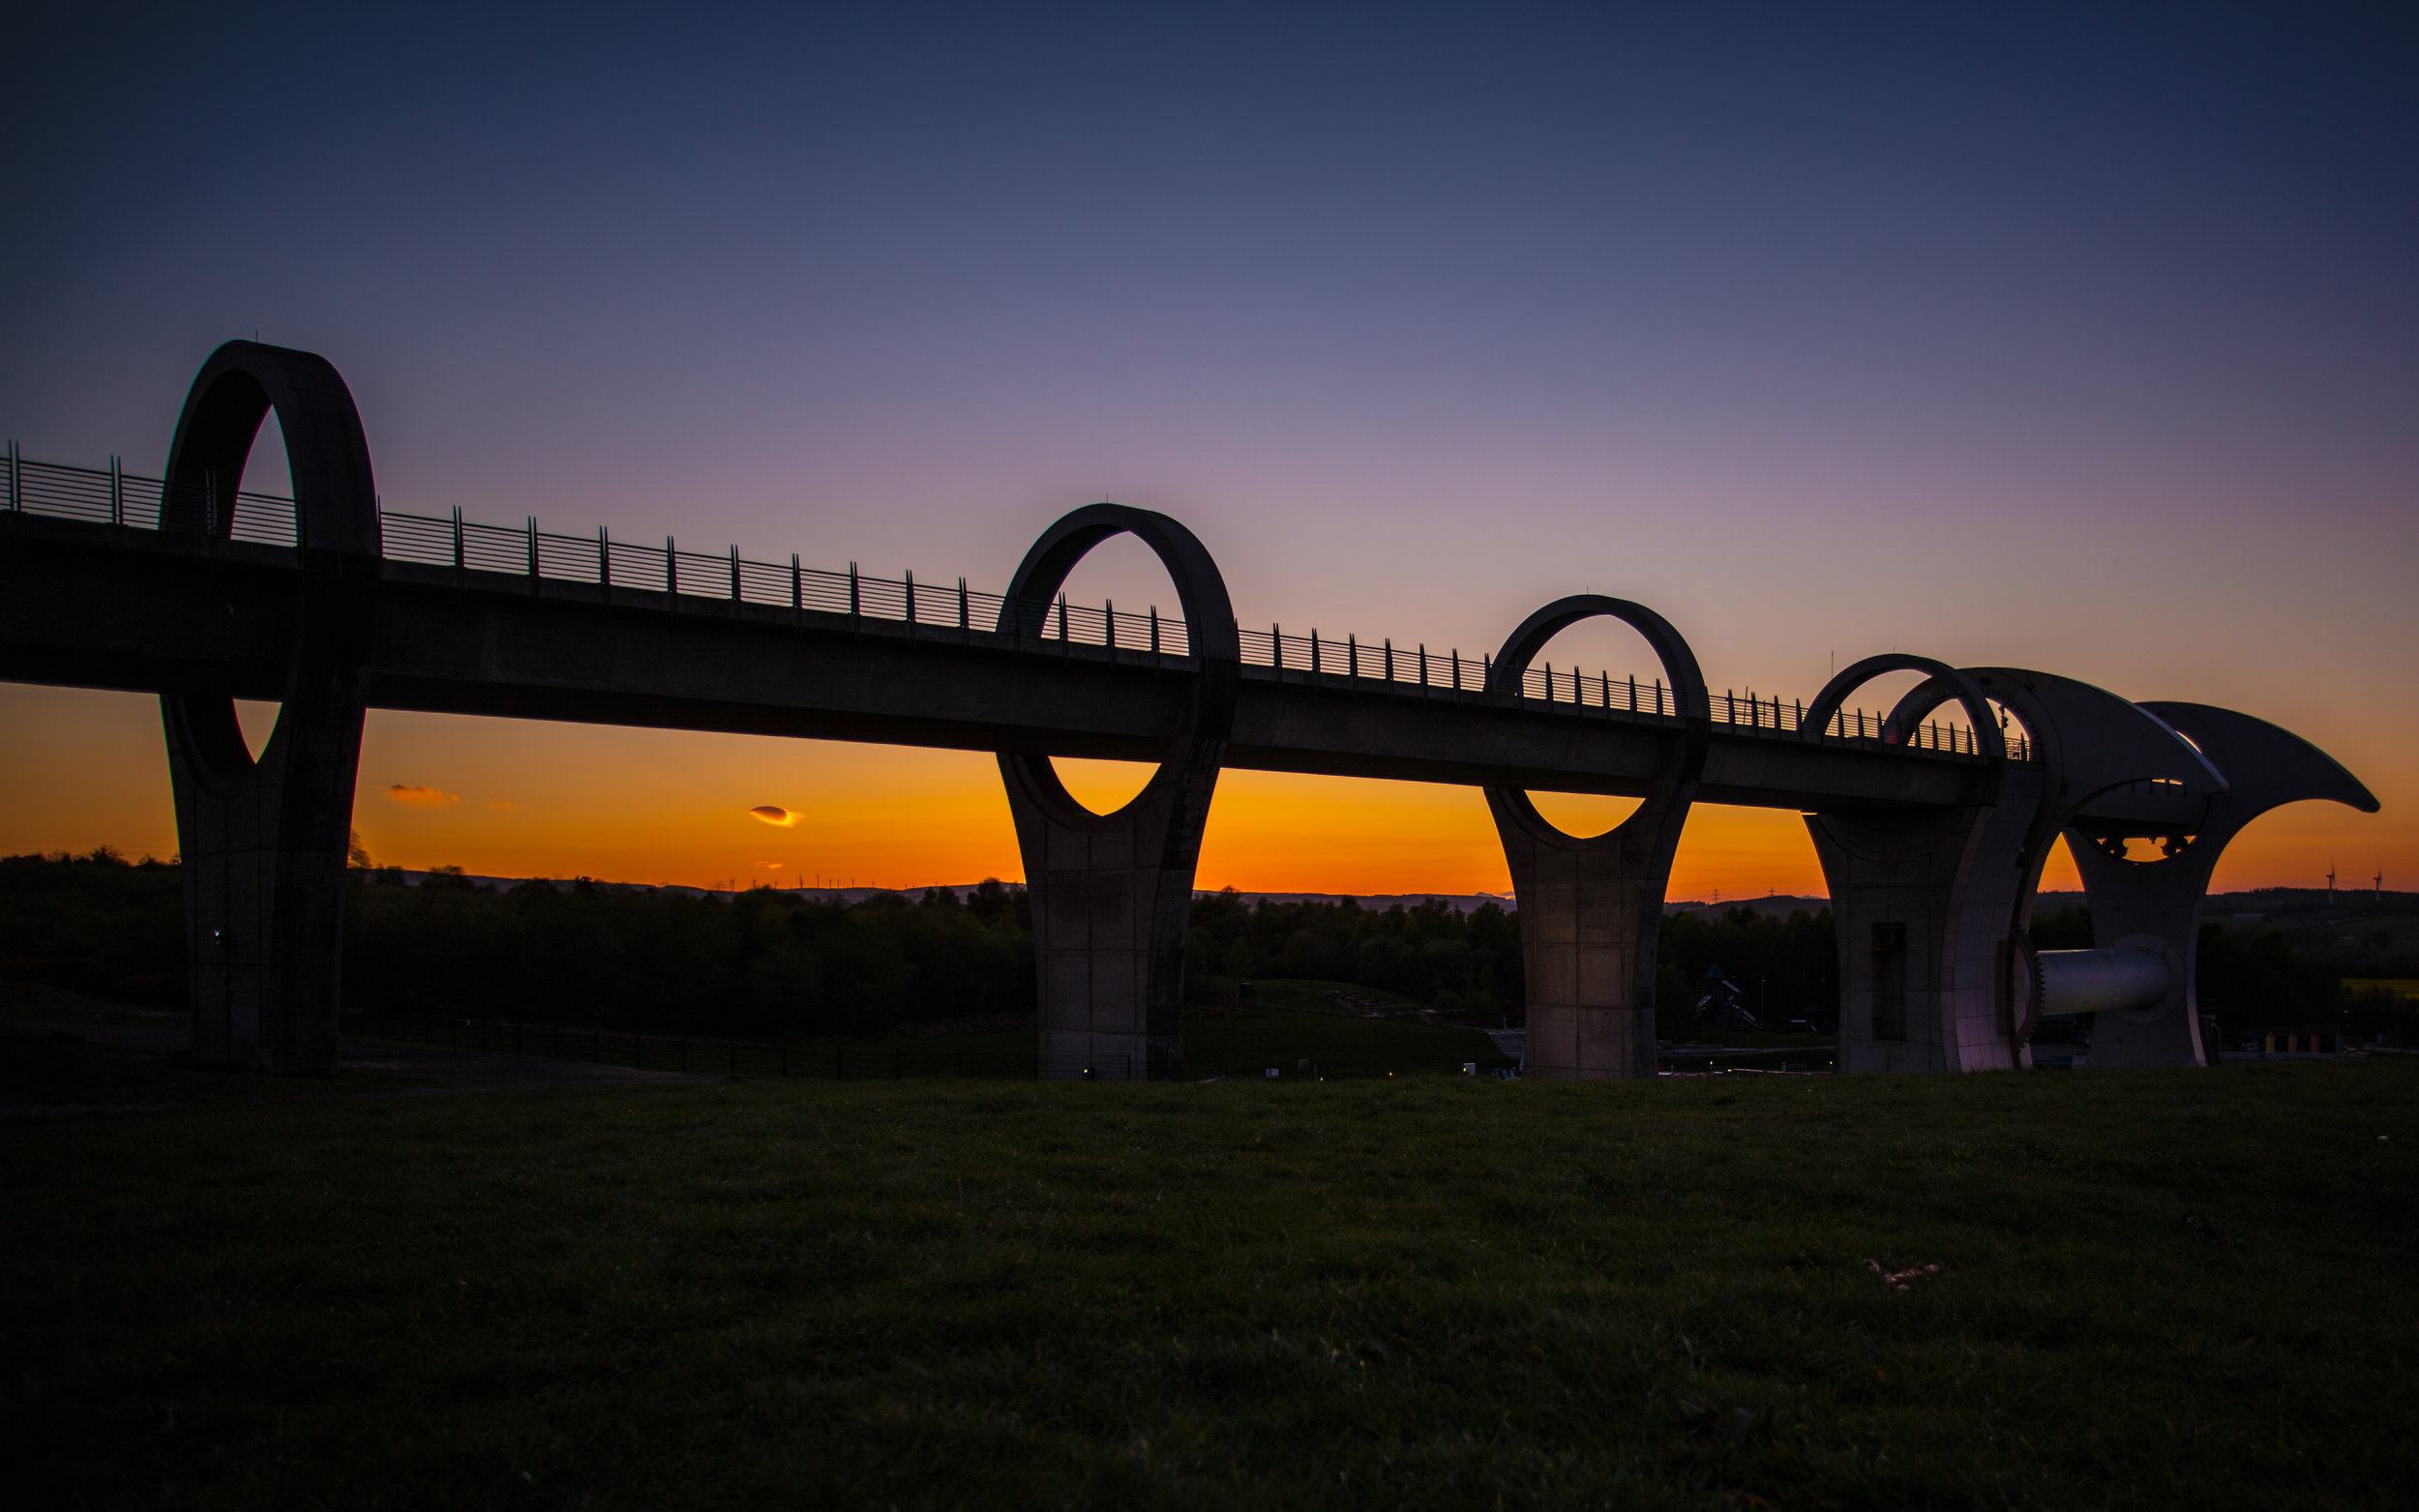 Silhouette of the Falkirk Wheel